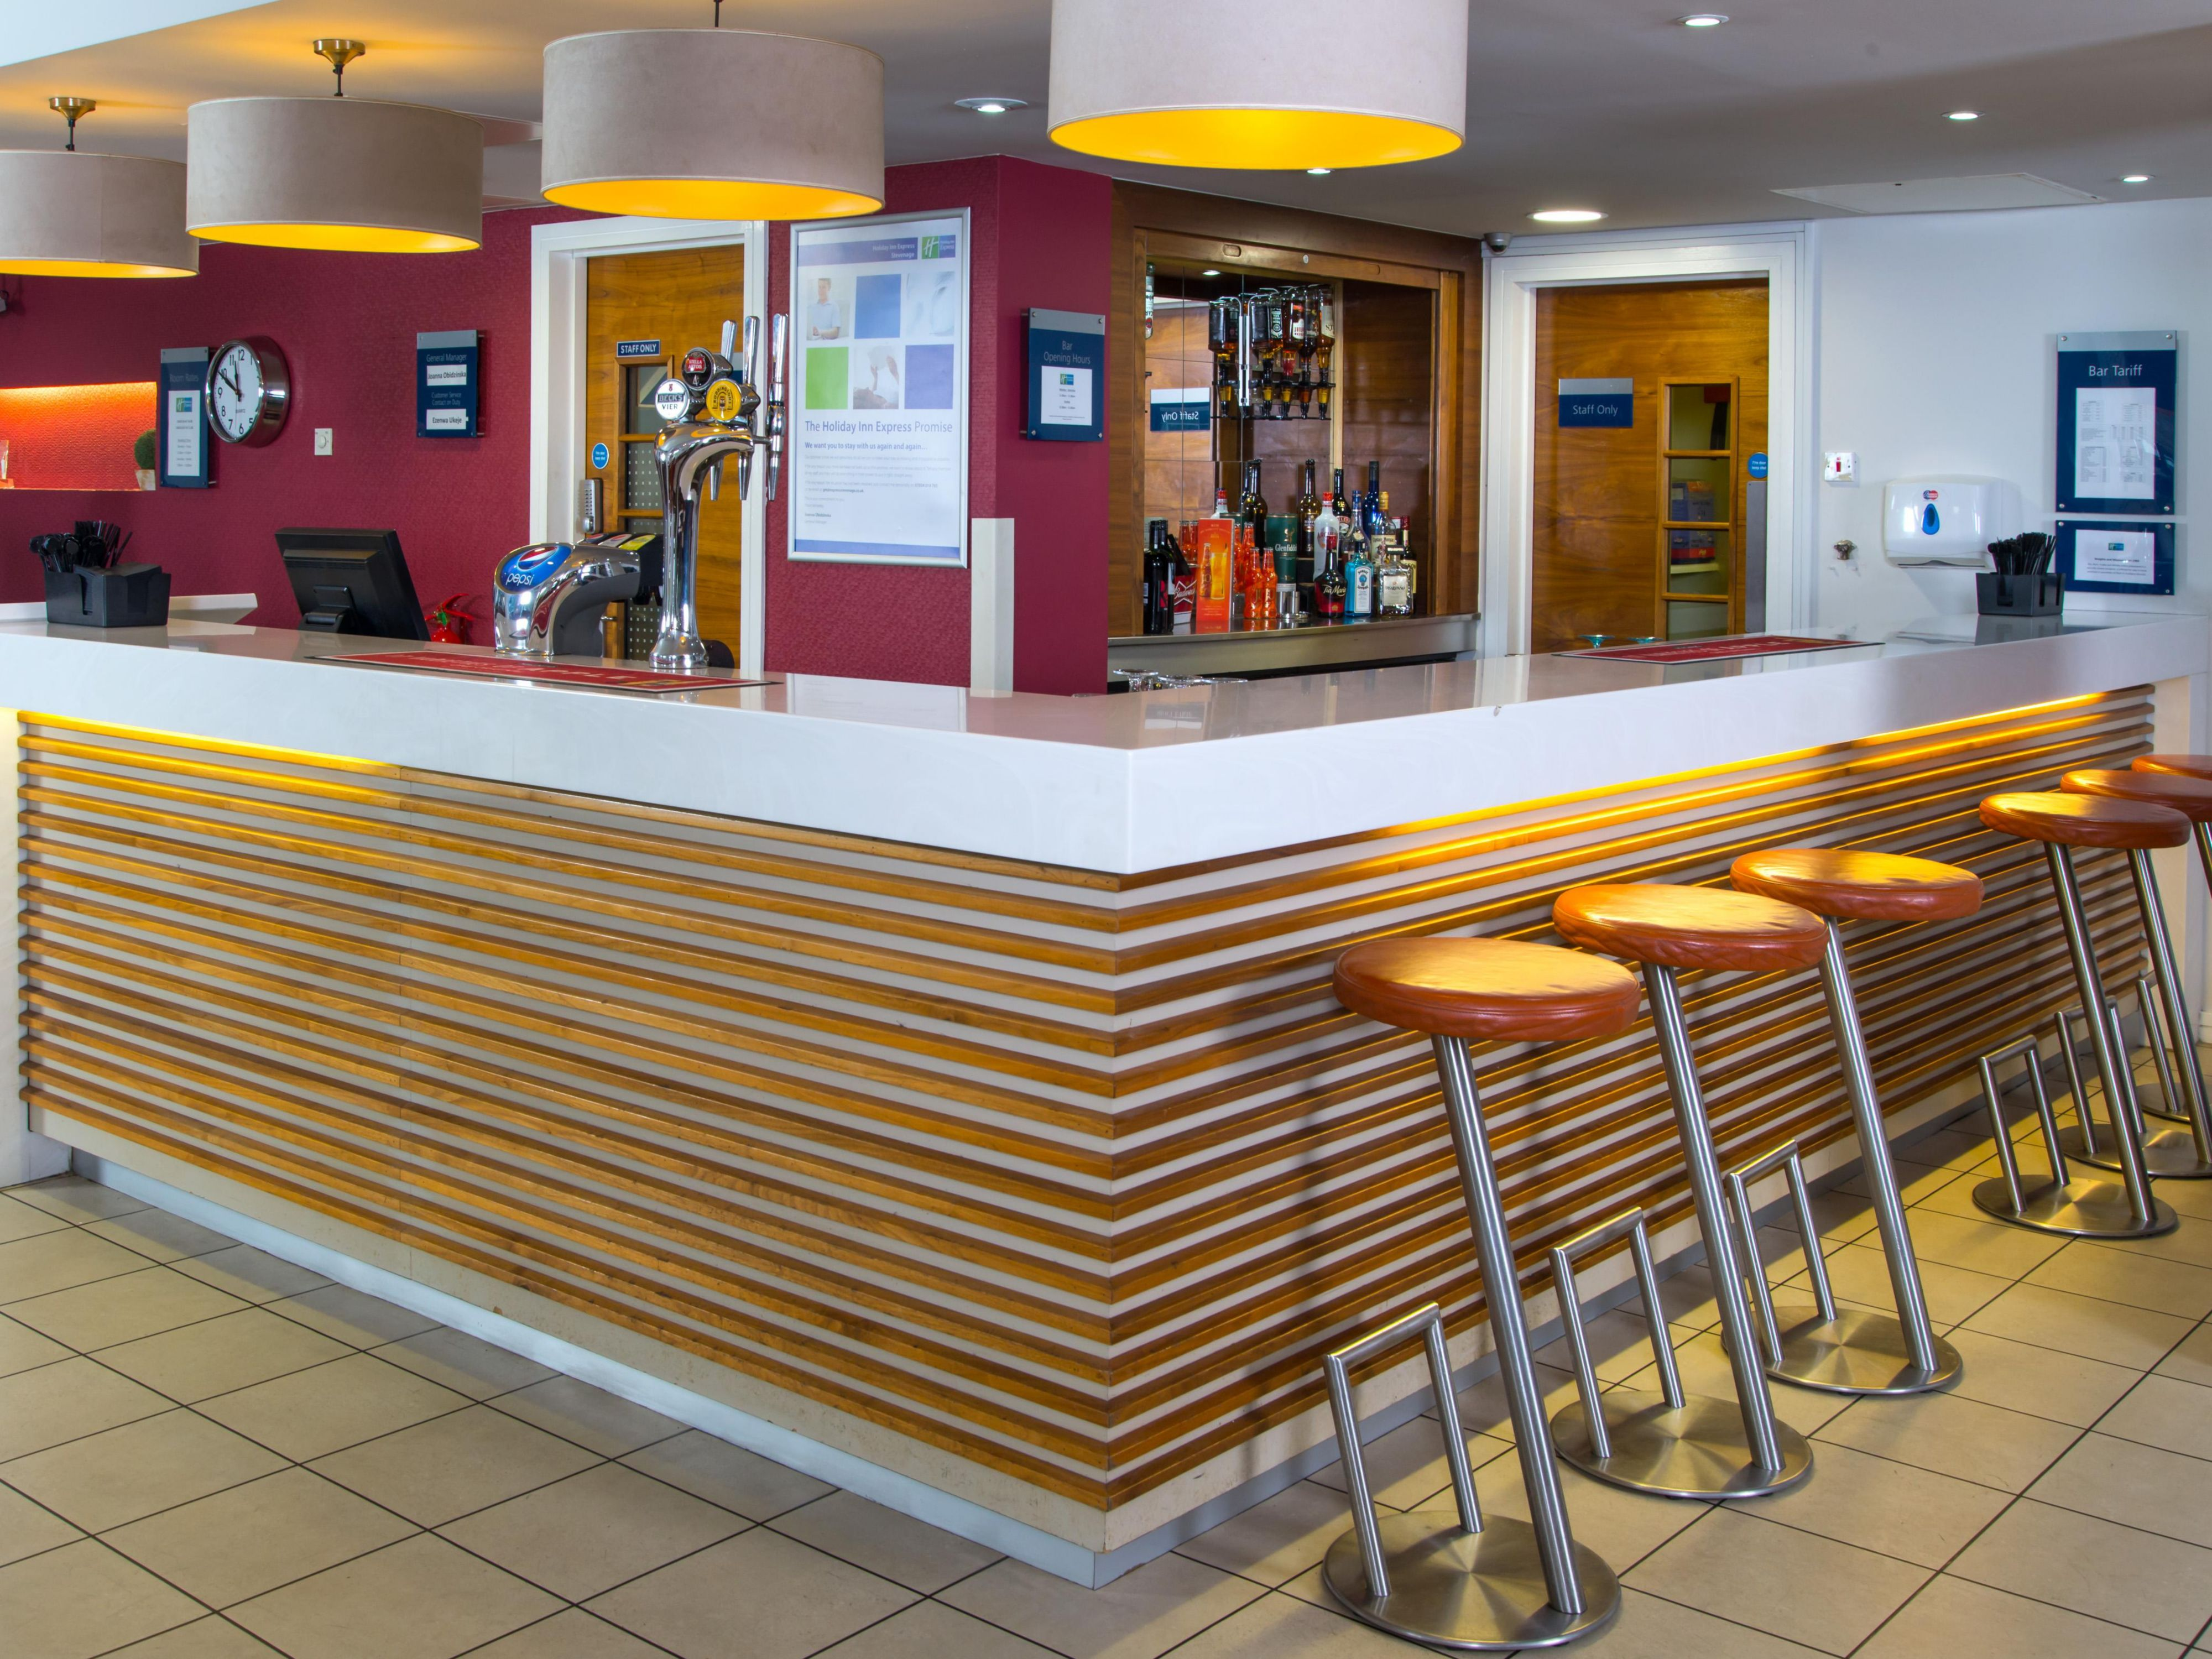 Our bar located in Reception is open throughout the day for you